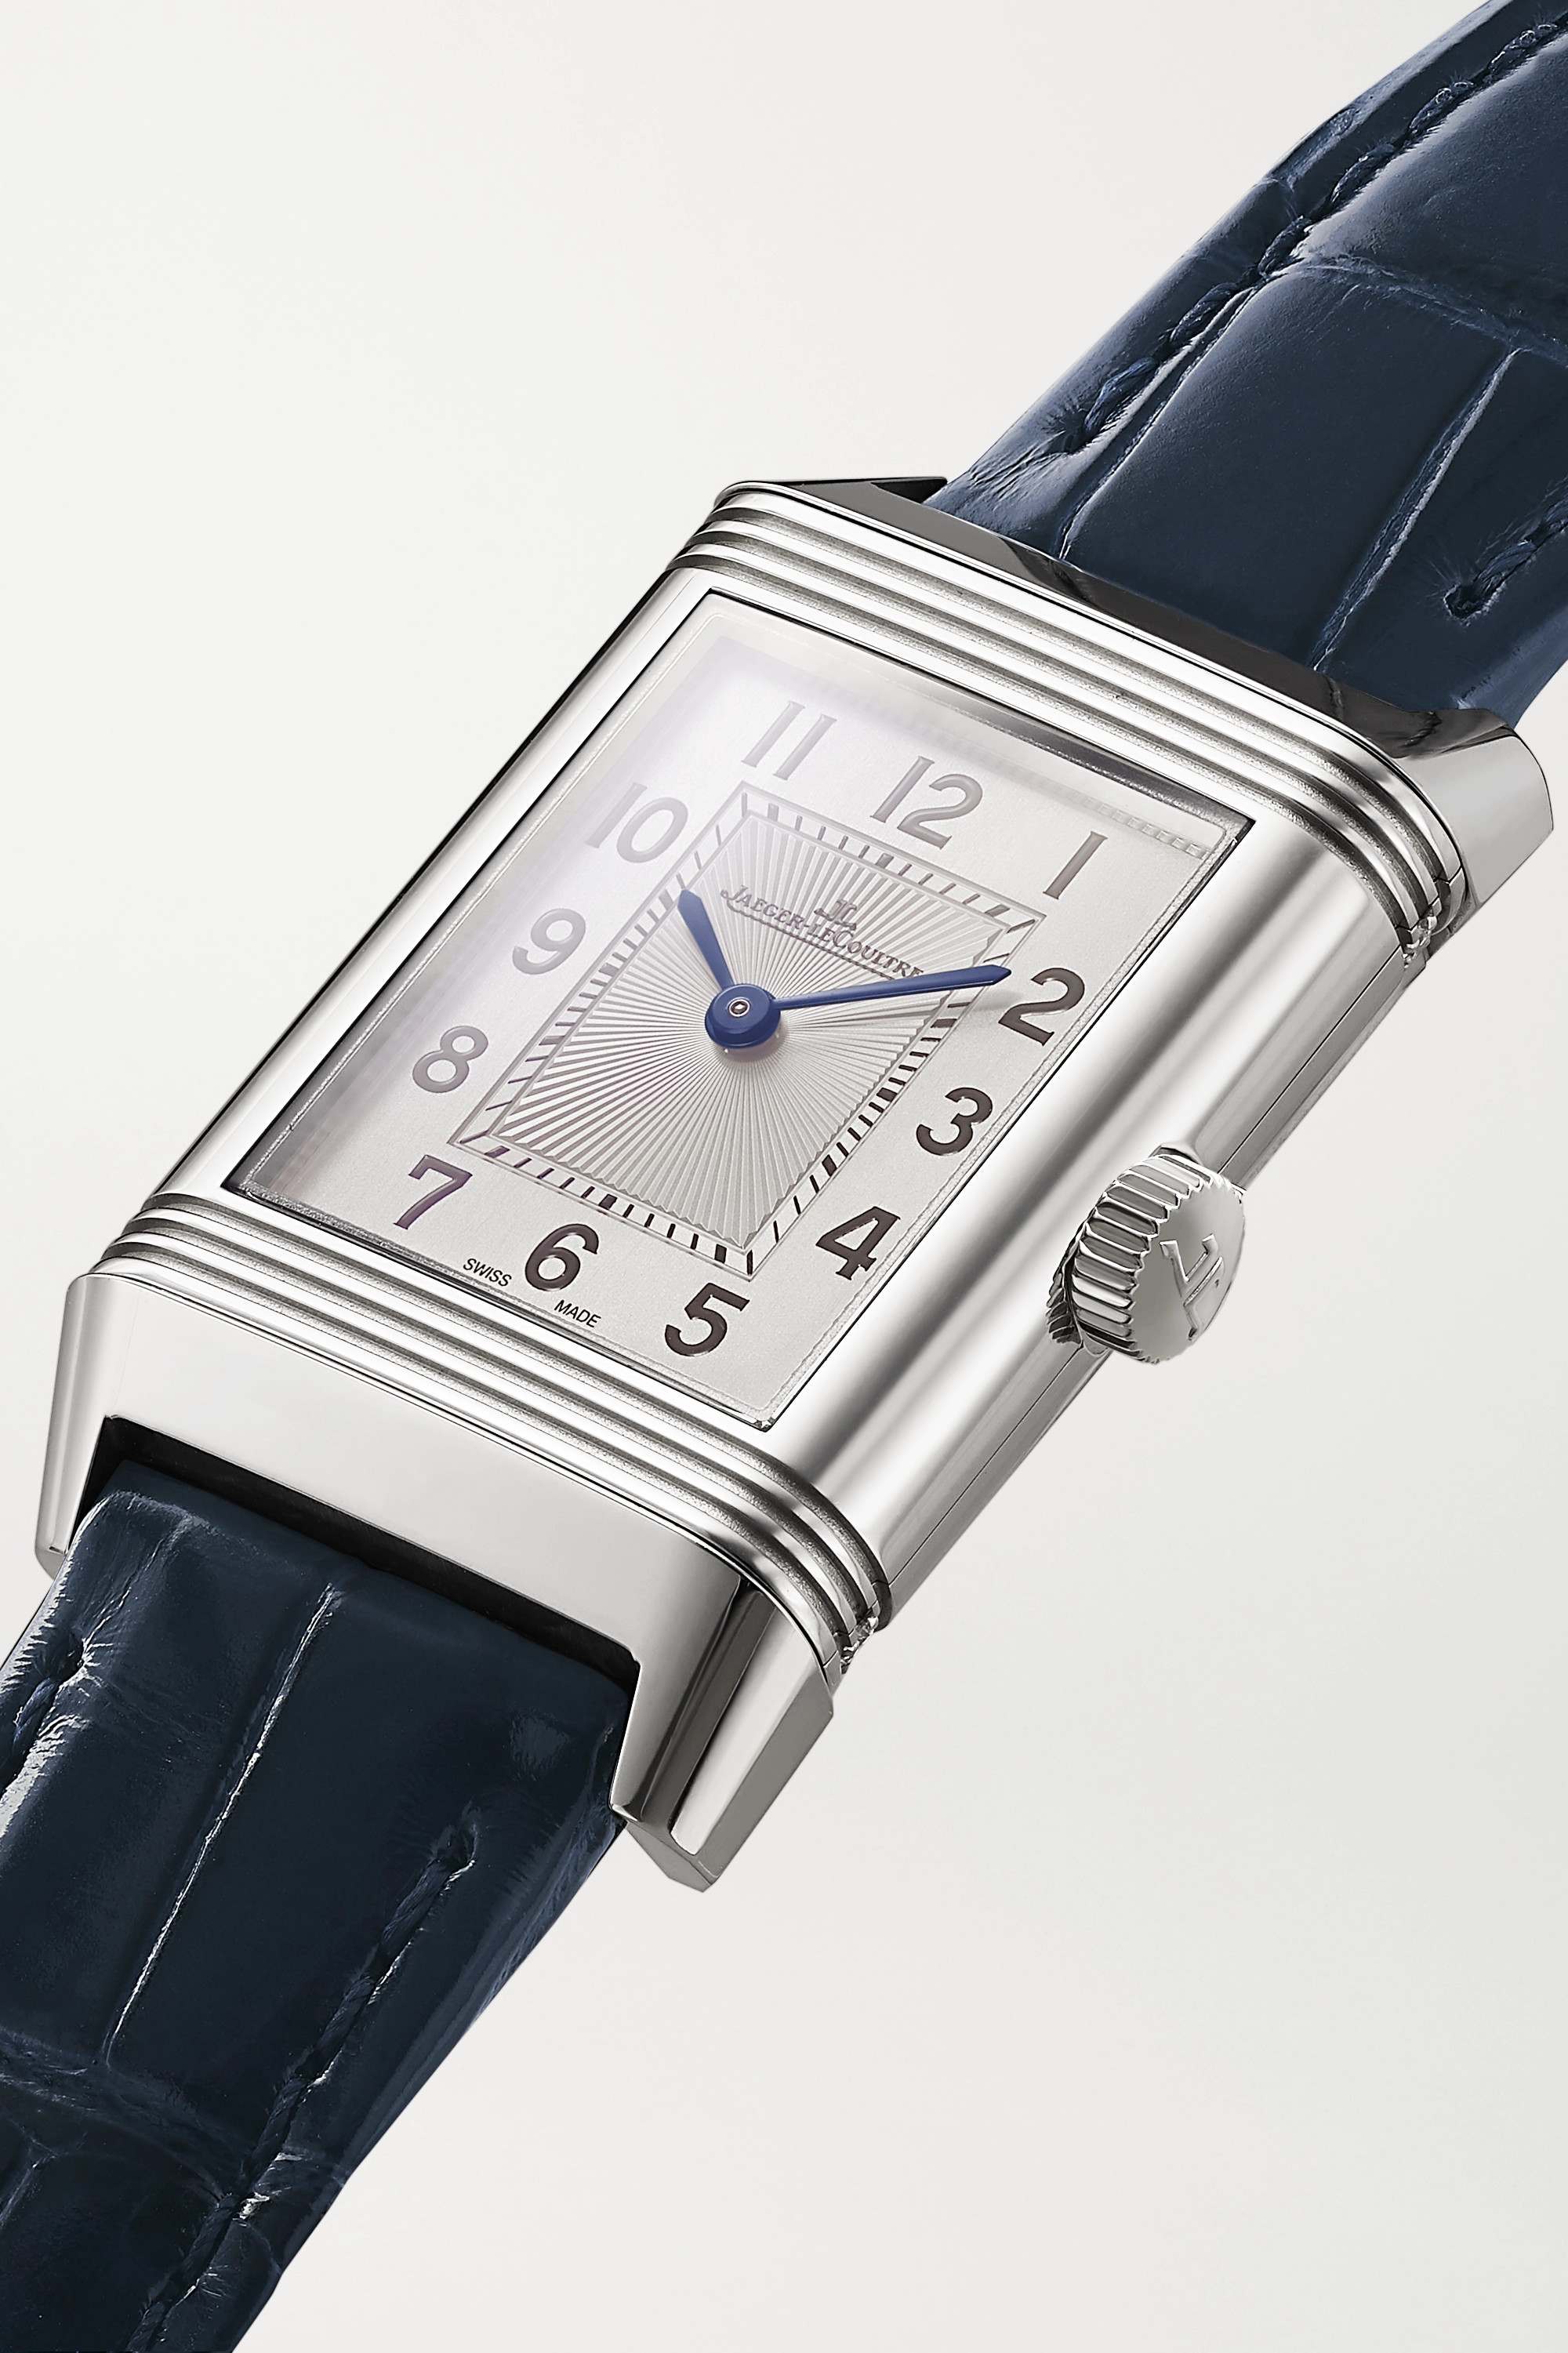 Jaeger-LeCoultre Reverso Classic Duetto 21 毫米精钢钻石腕表(短吻鳄鱼皮表带)